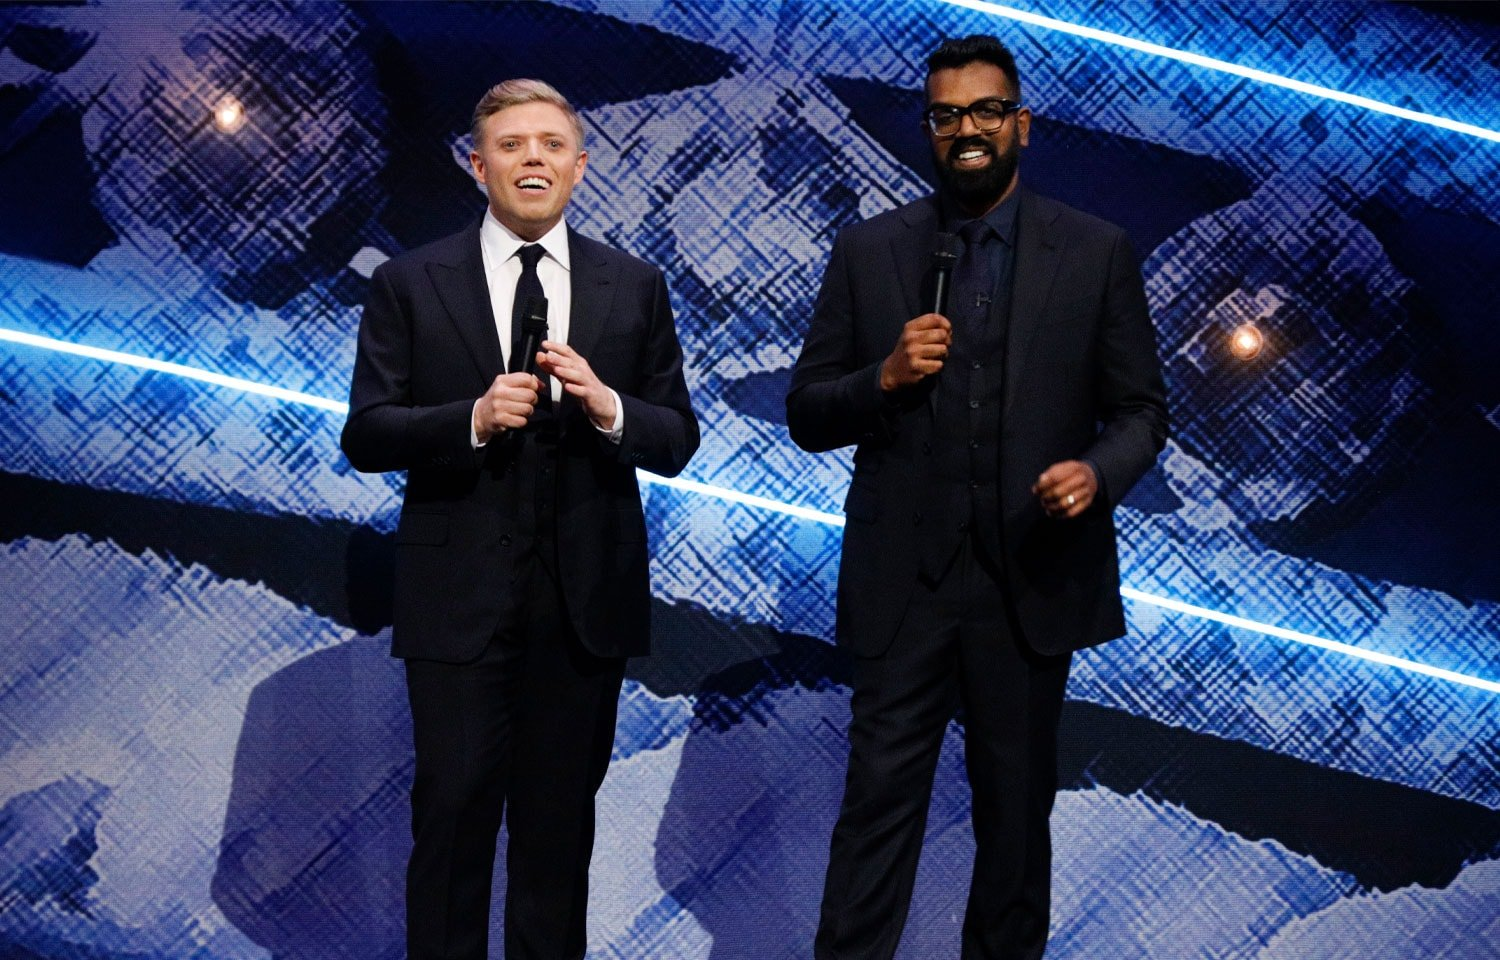 ROYAL VARIETY PERFORMANCE 2019 WITH ROB BECKETT AND ROMESH